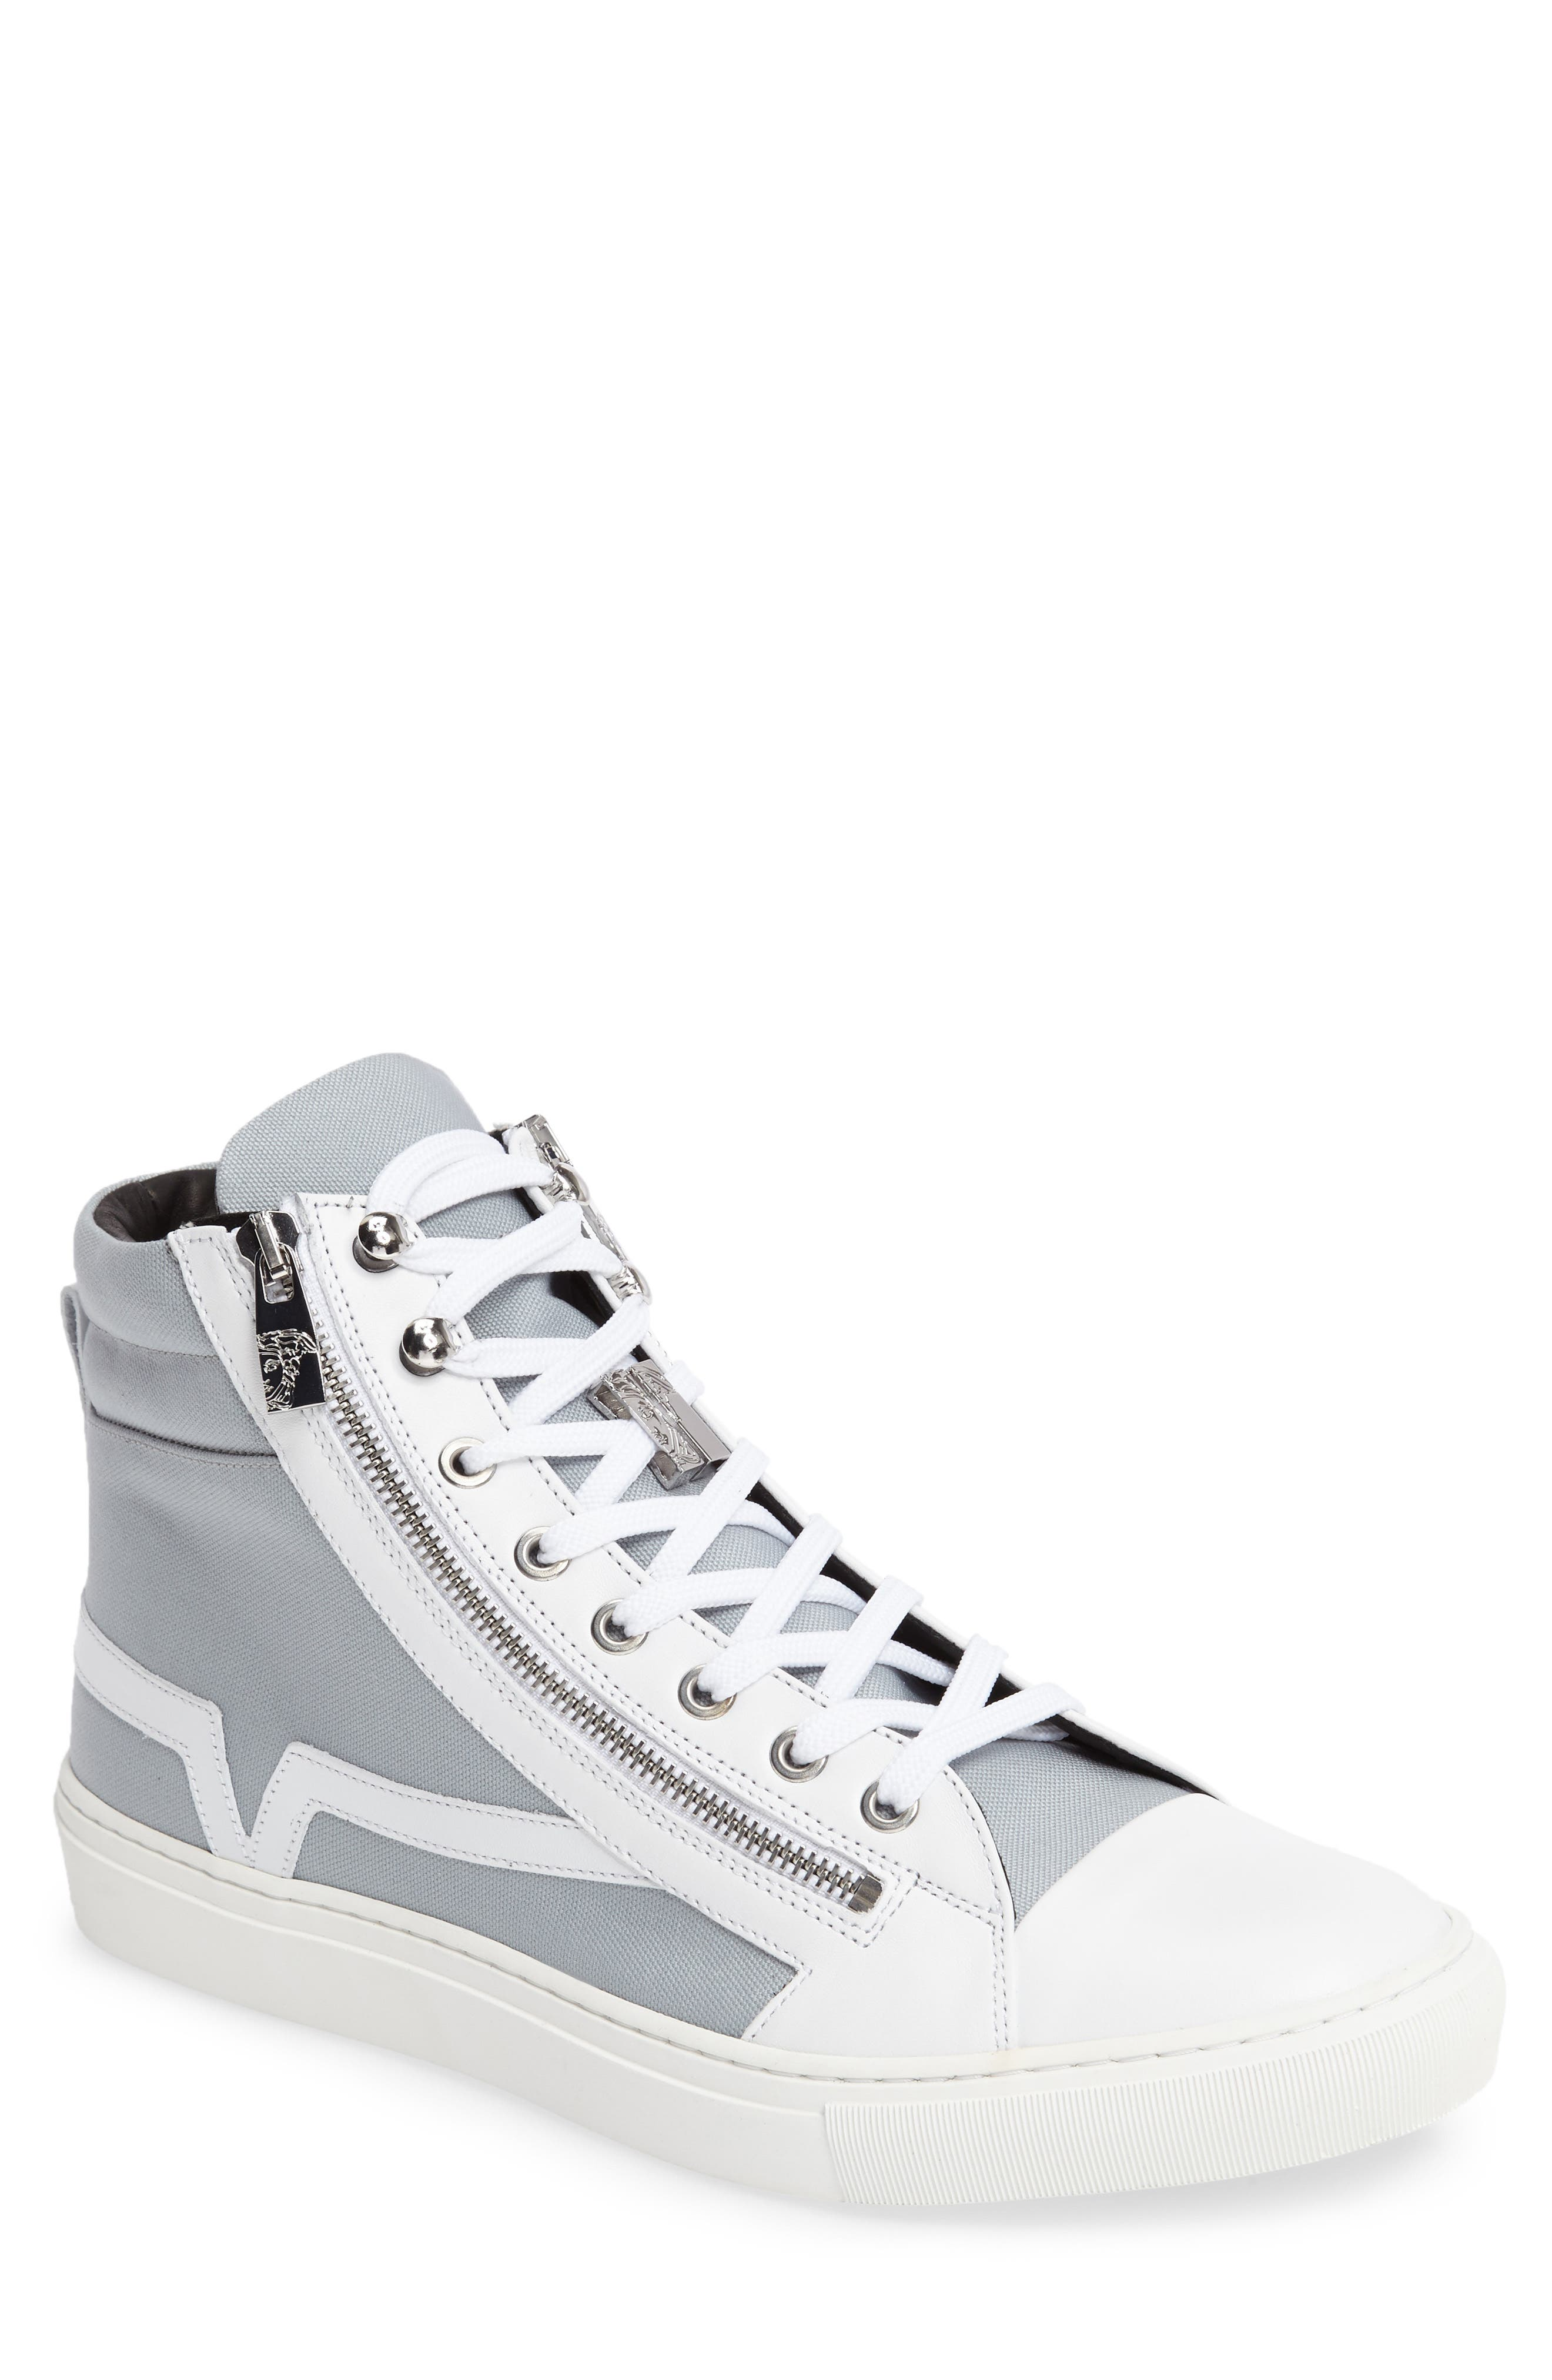 VERSACE COLLECTION High Top Sneaker